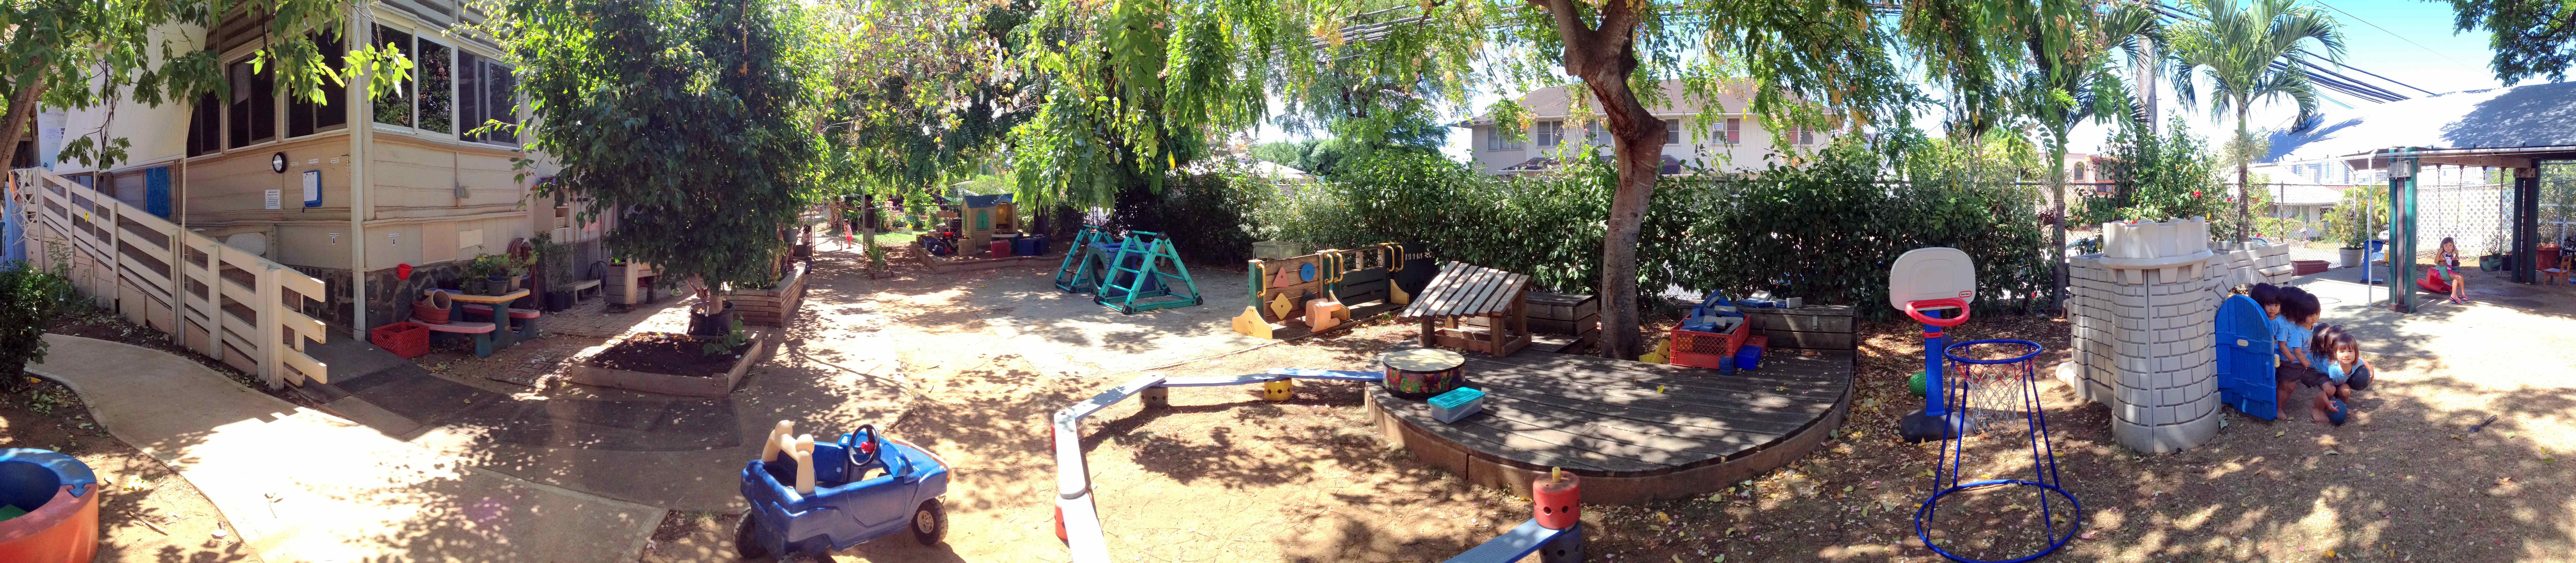 toddler playground pano 3